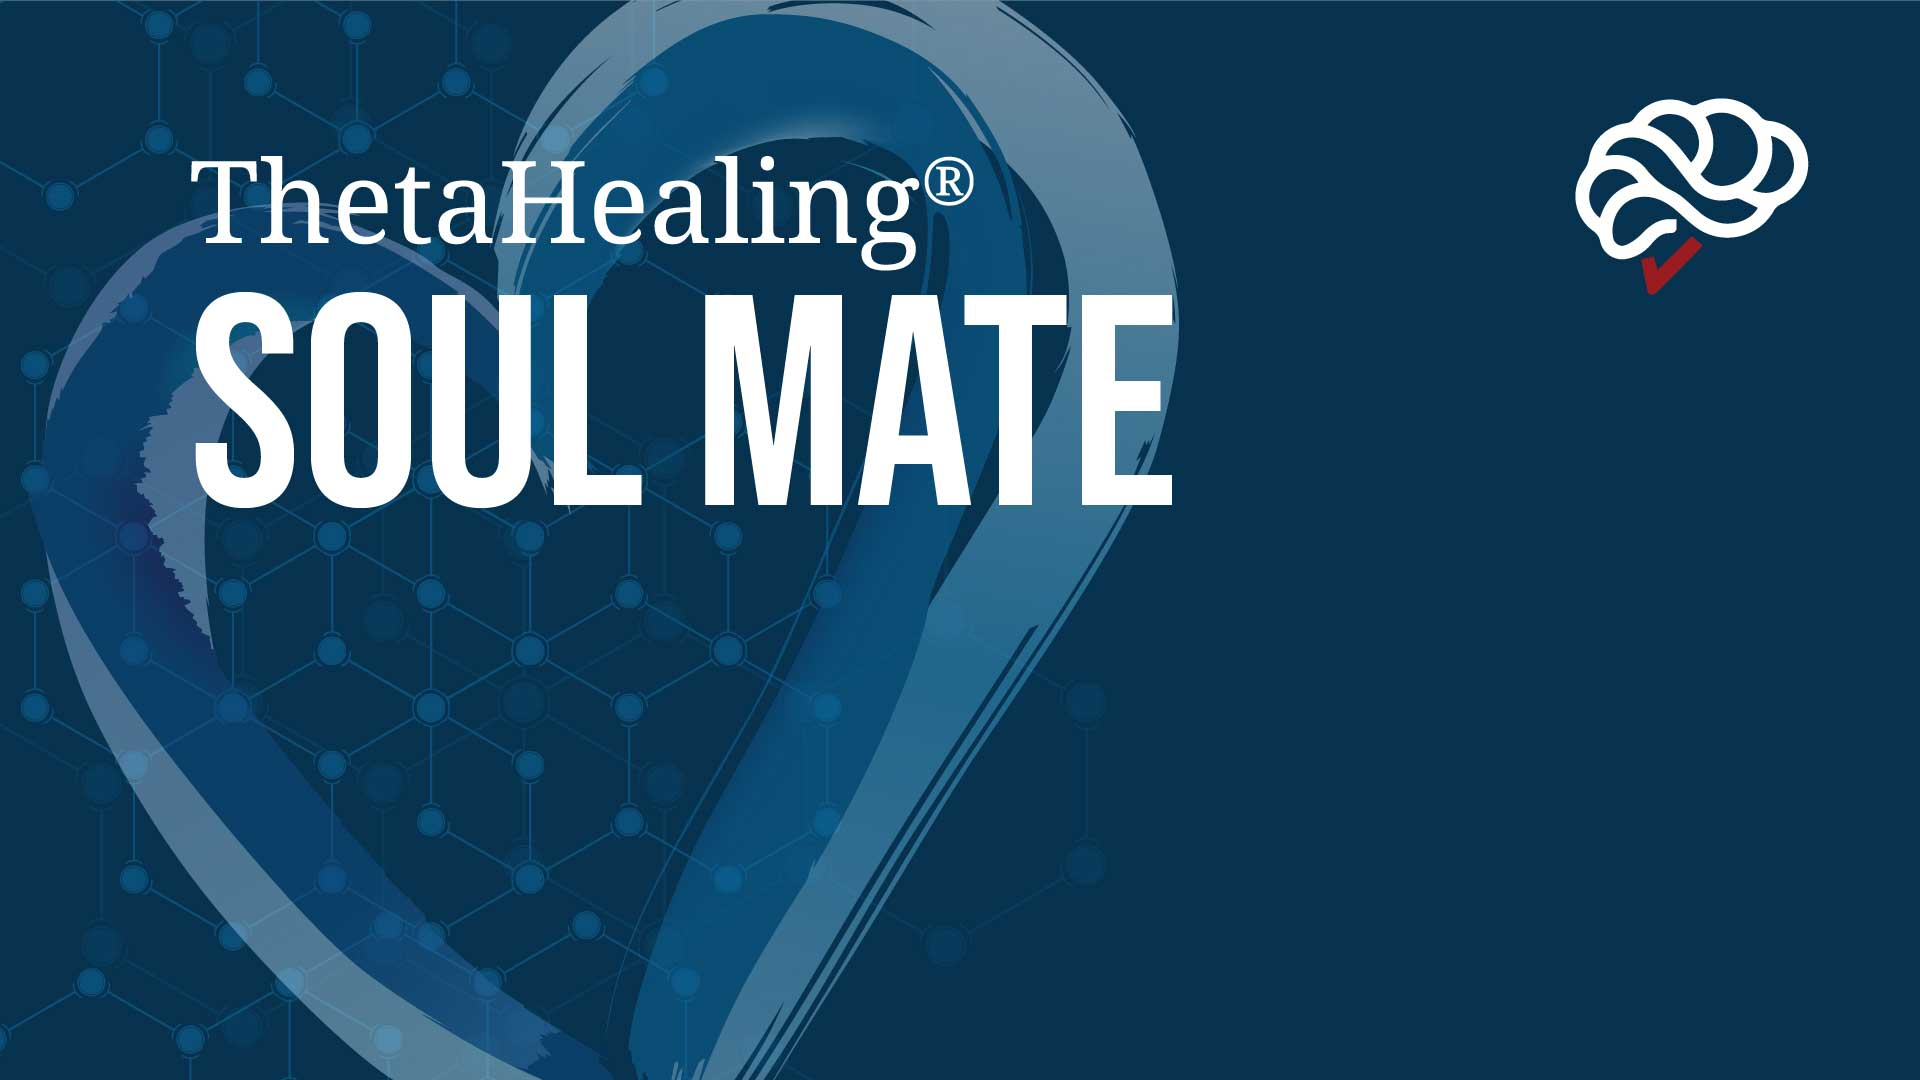 ThetaHealing Soulmate Course banner